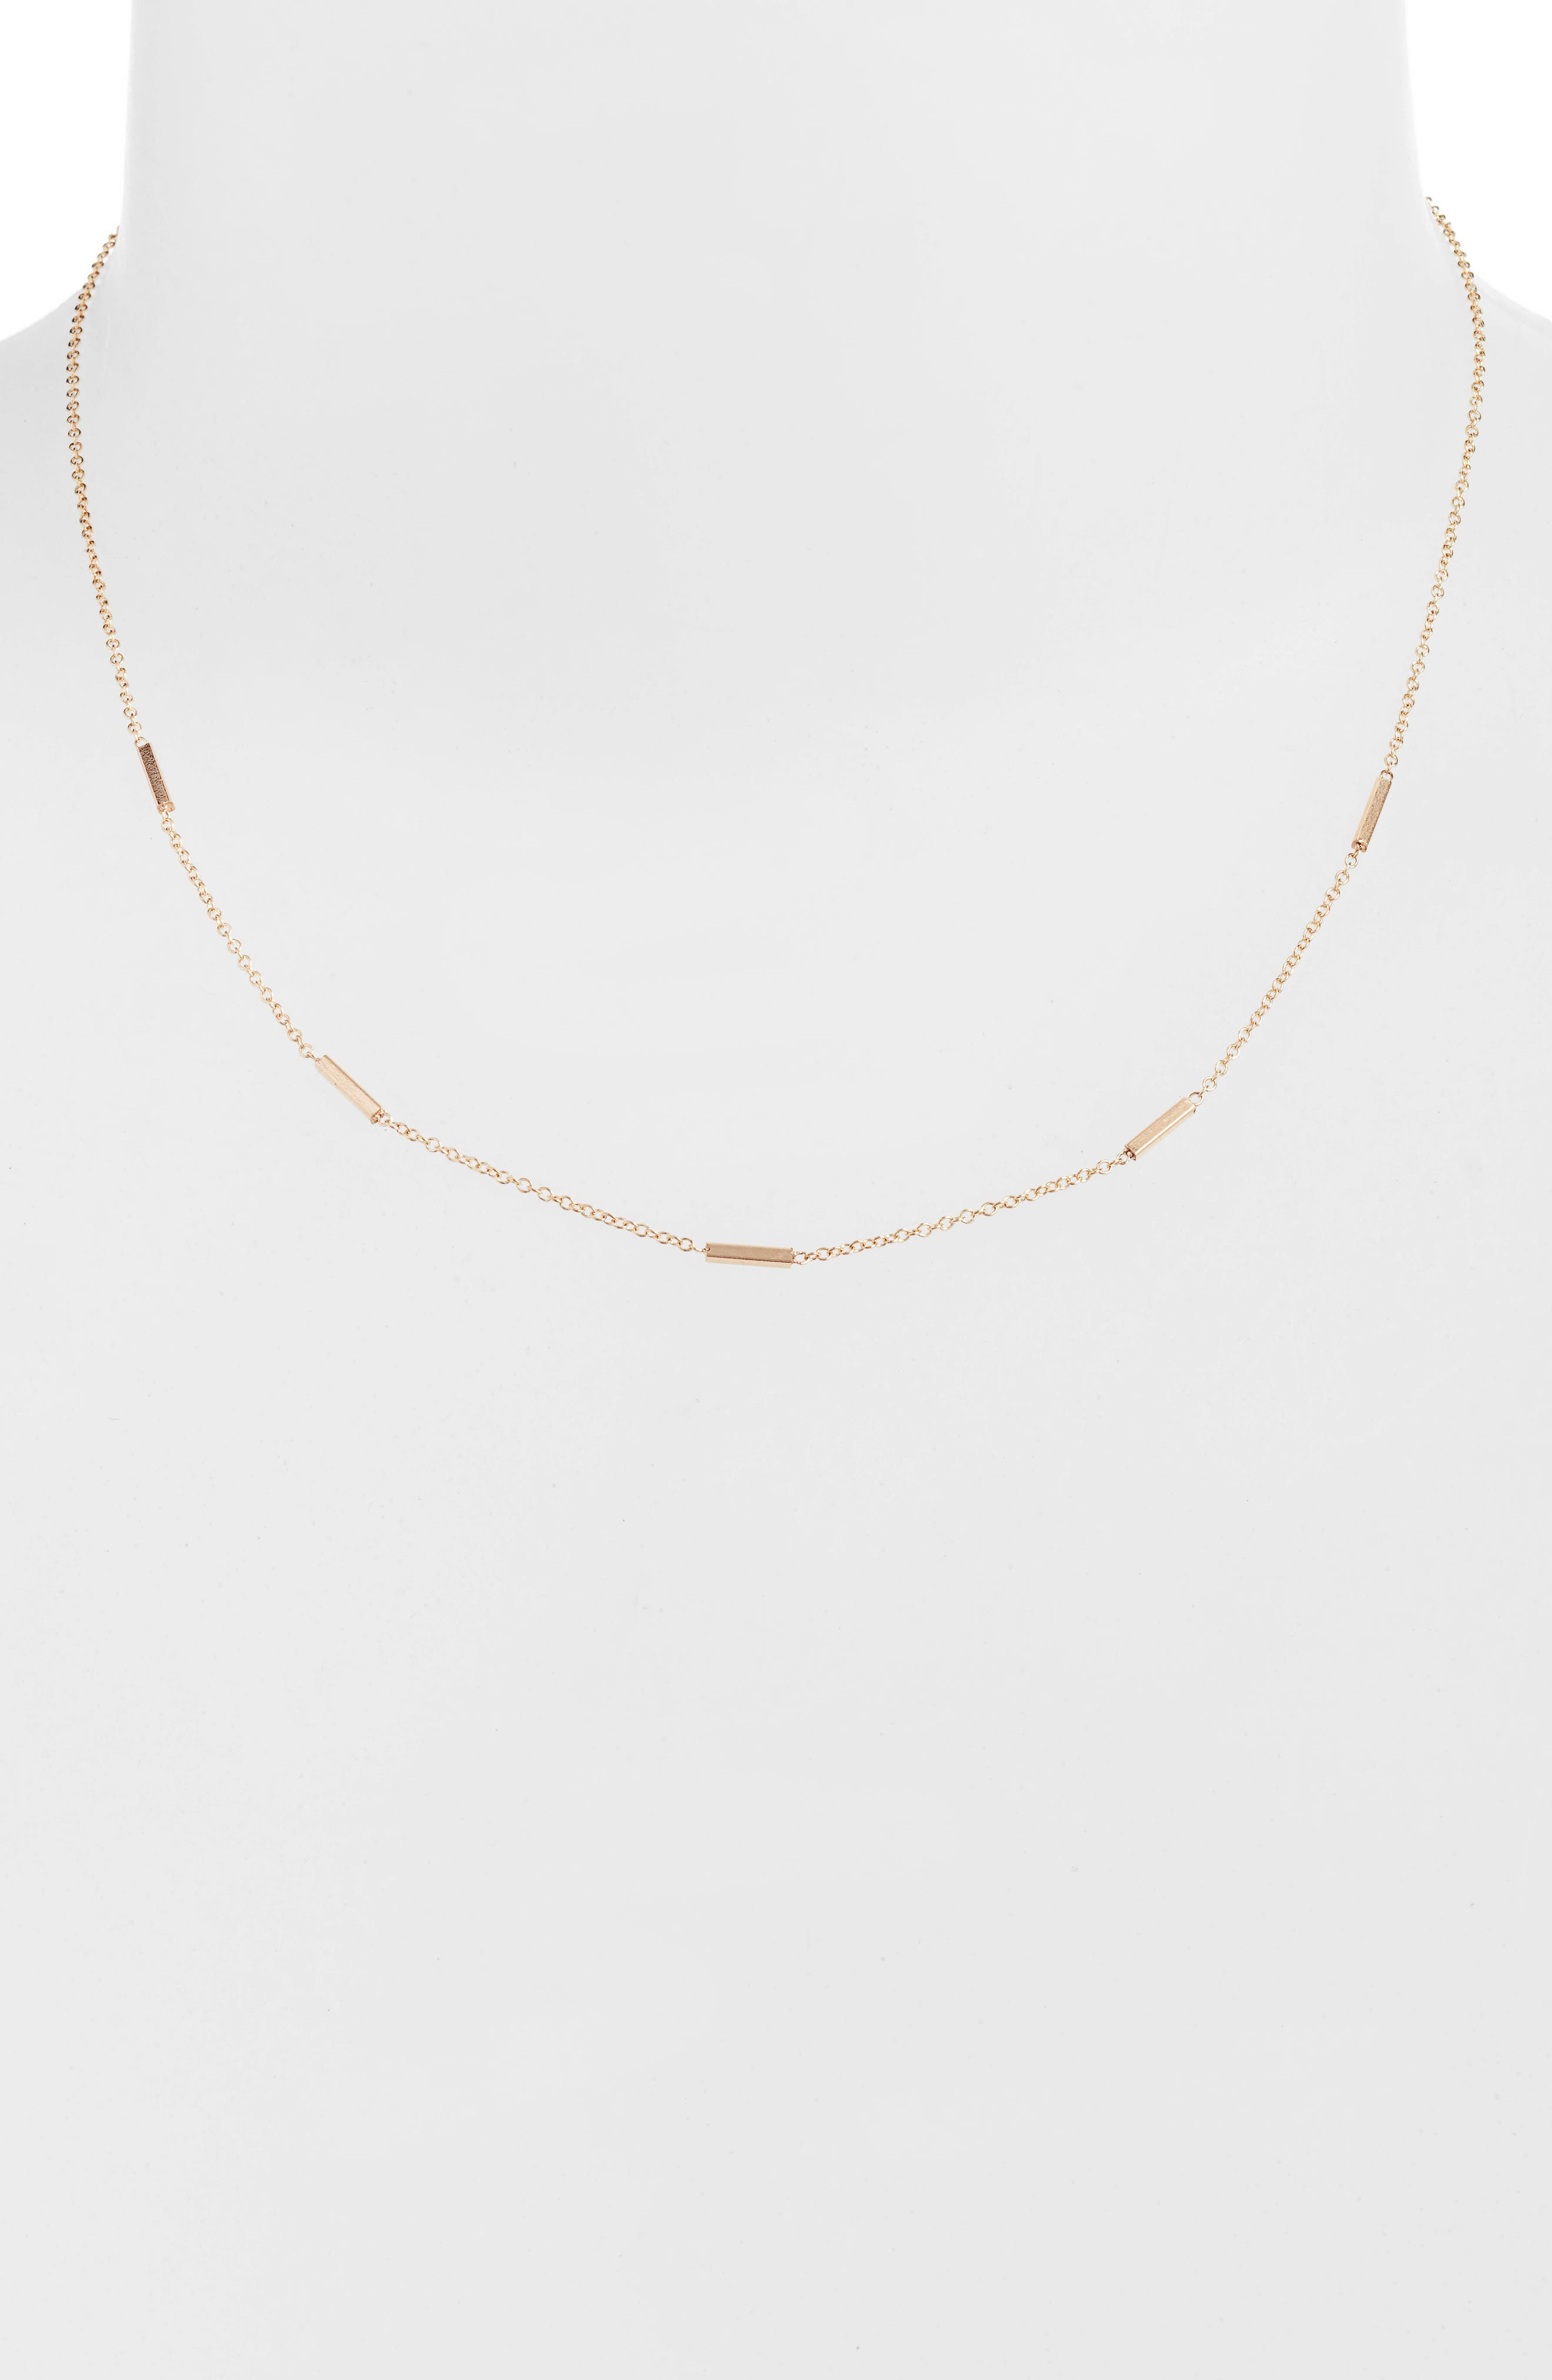 Tiny Bar Station Short Necklace,                         Main,                         color, Yellow Gold